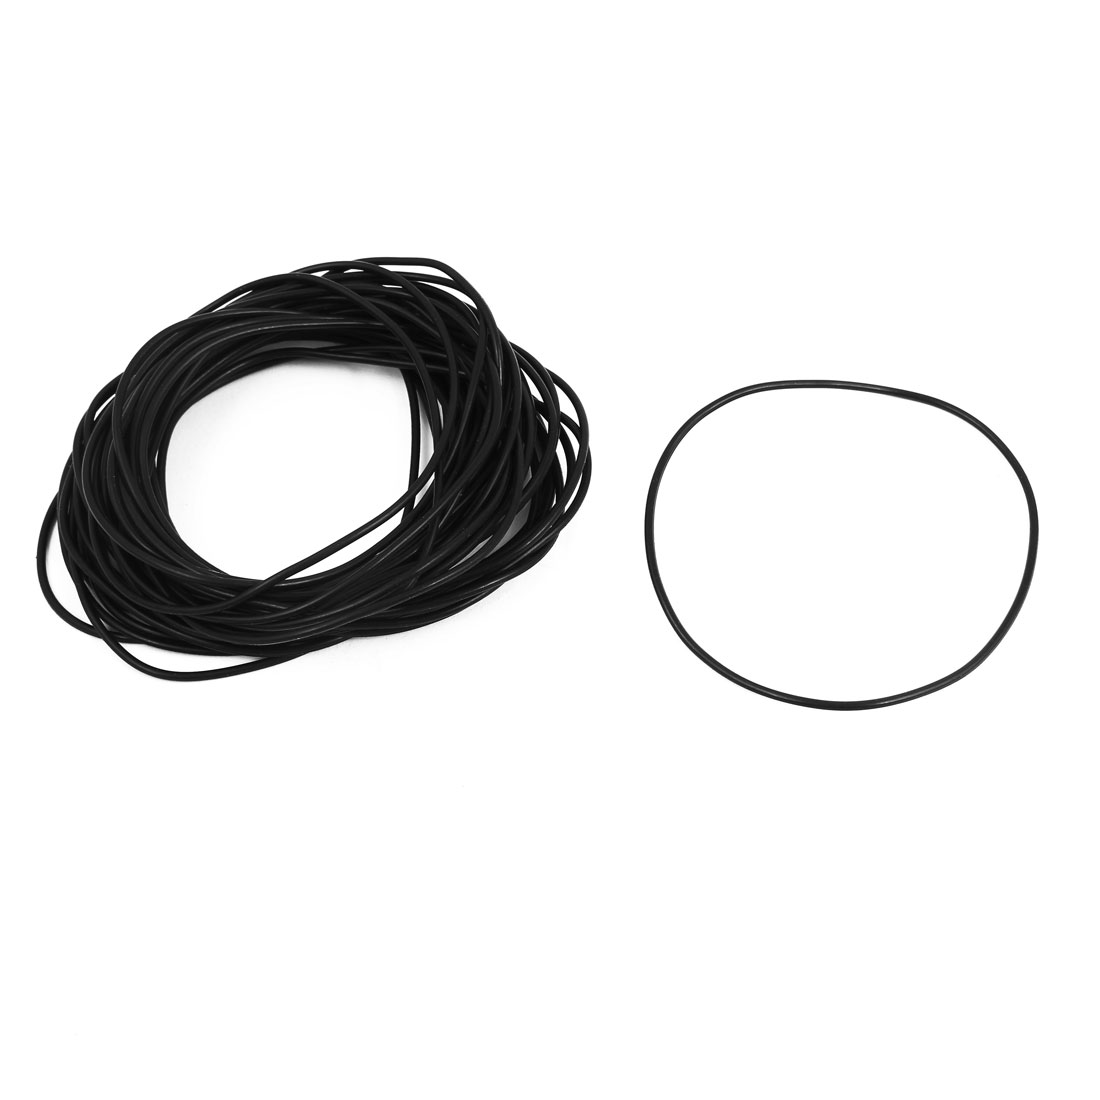 40 Pcs 65mm x 1.5mm Rubber O-rings NBR Heat Resistant Sealing Ring Grommets